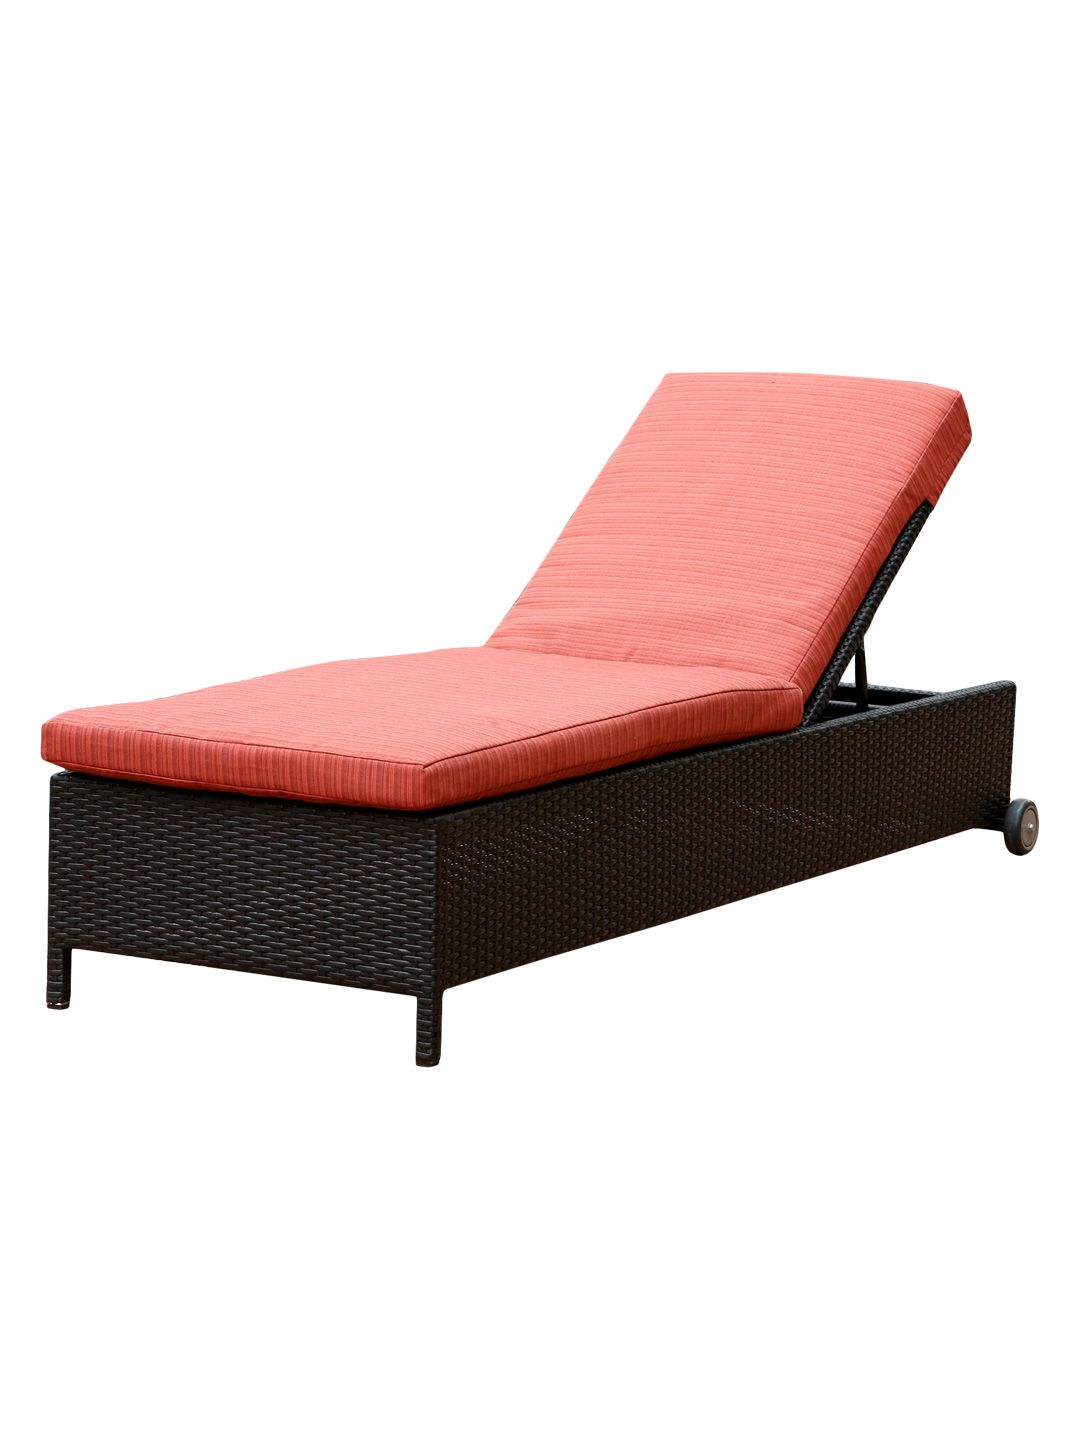 Enjoy A Refreshing Nap On The Veranda Or Dive Into Your Latest Read Poolside With This Wicker Inspired Chaise Showcasing Red Cushion For Pop Of Color